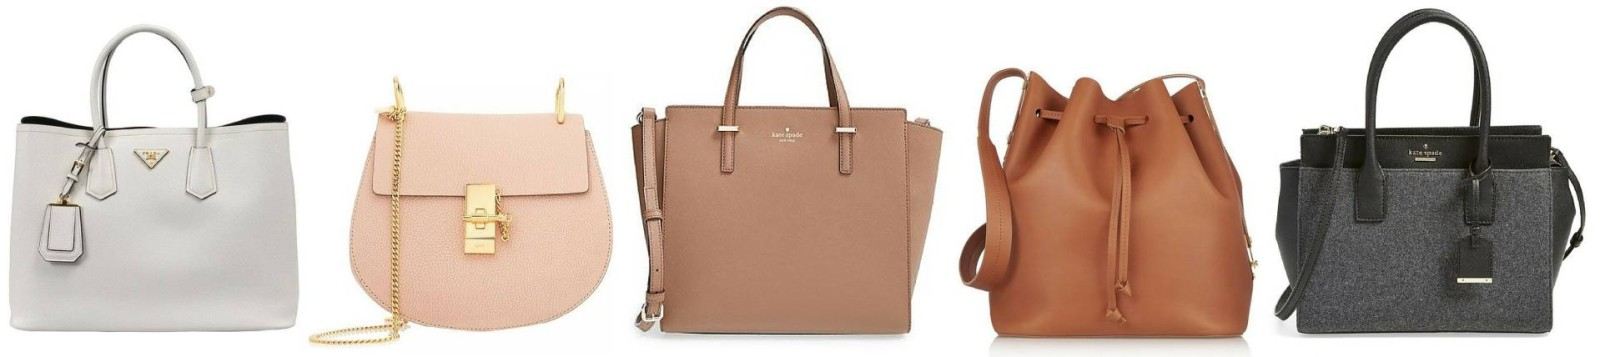 3 Key Tips to Purchasing the Perfect Tote!